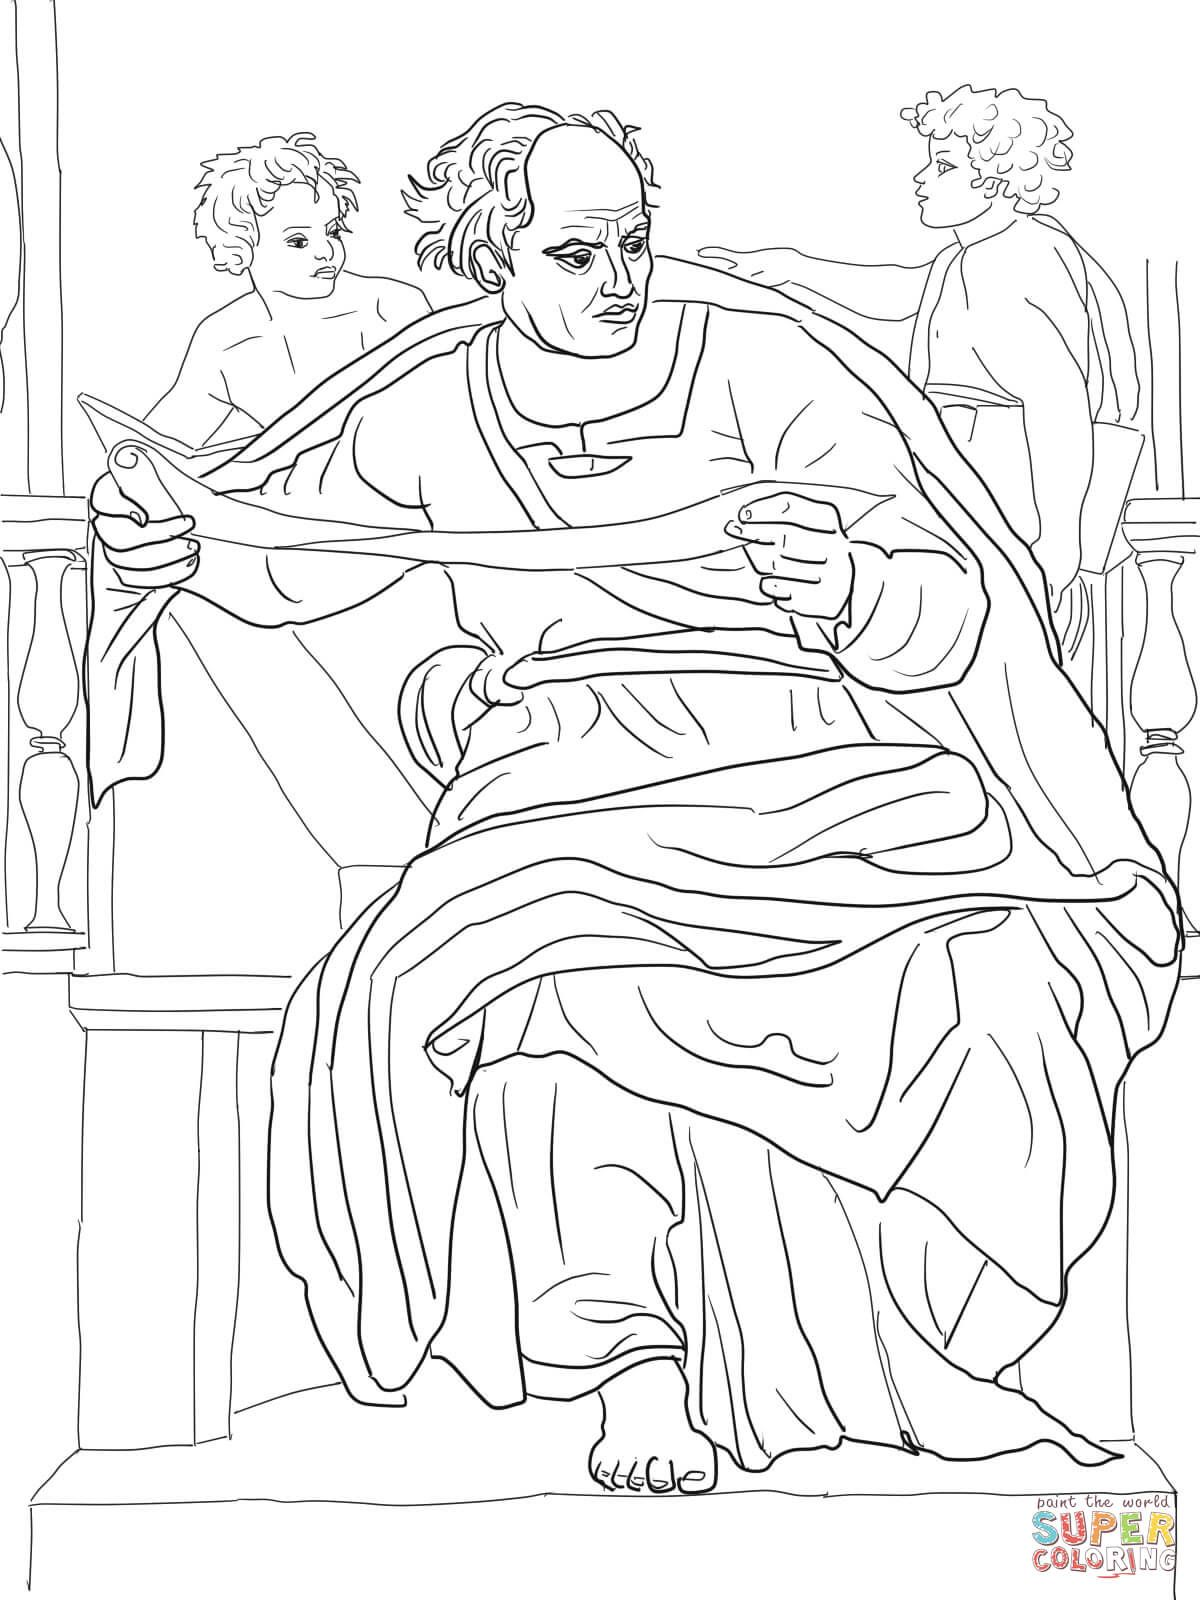 Prophet Joel Coloring Page From Michelangelo Category Sistine Chapel Coloring Pages Select Coloring Pages Animal Coloring Pages Free Printable Coloring Pages